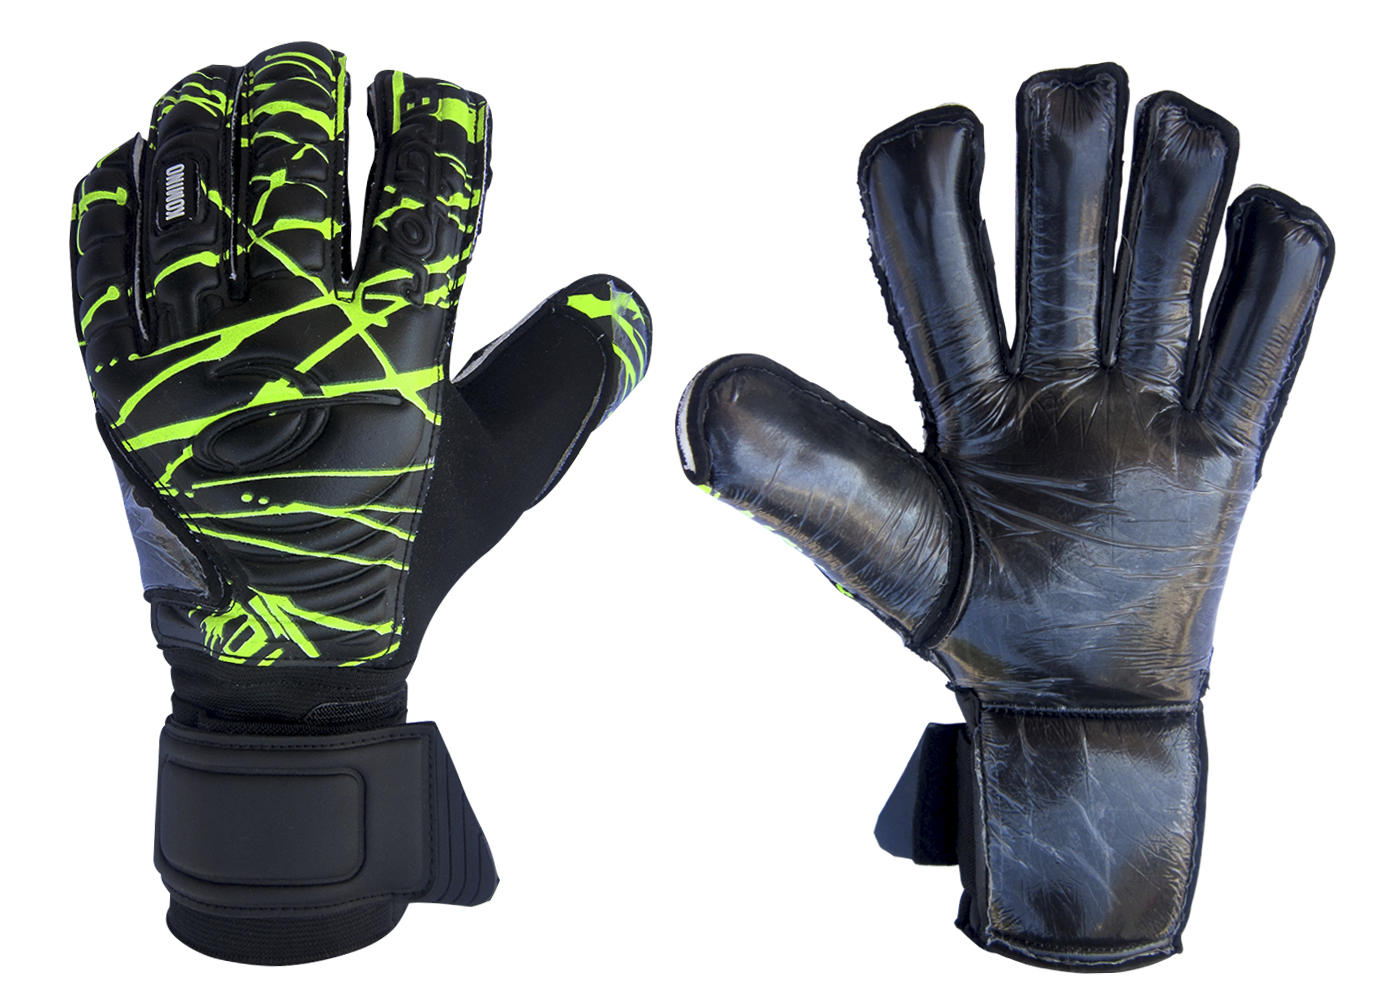 Komino finger protection gk gloves